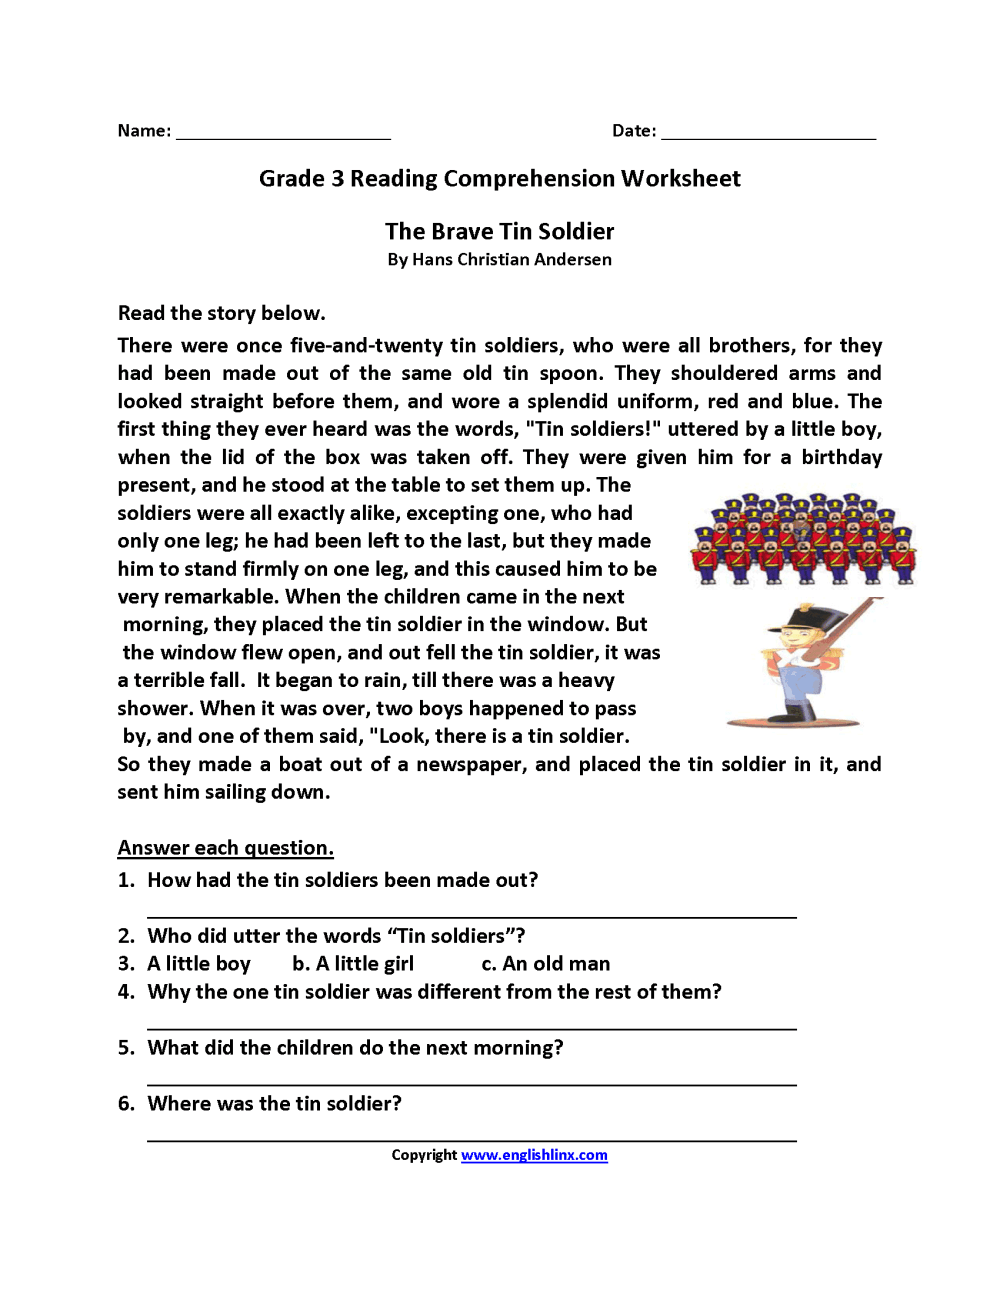 medium resolution of 20 Best 6th Grade Reading Comprehension Printable Worksheets With Questions  images on Best Worksheets Collection